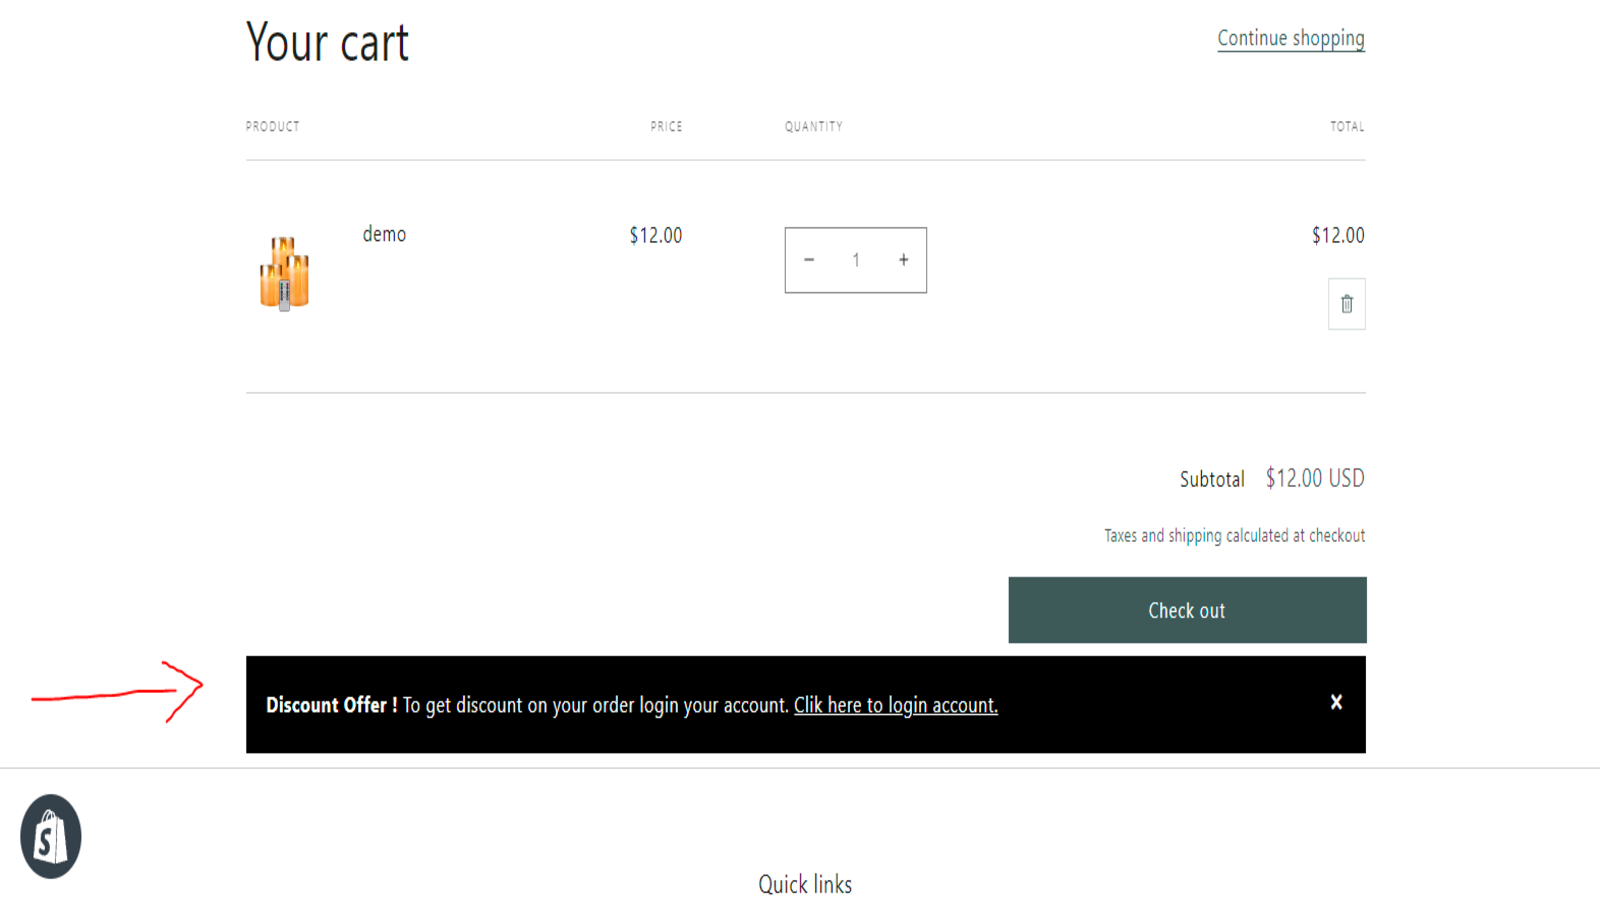 Login message display, to get discount offer button !